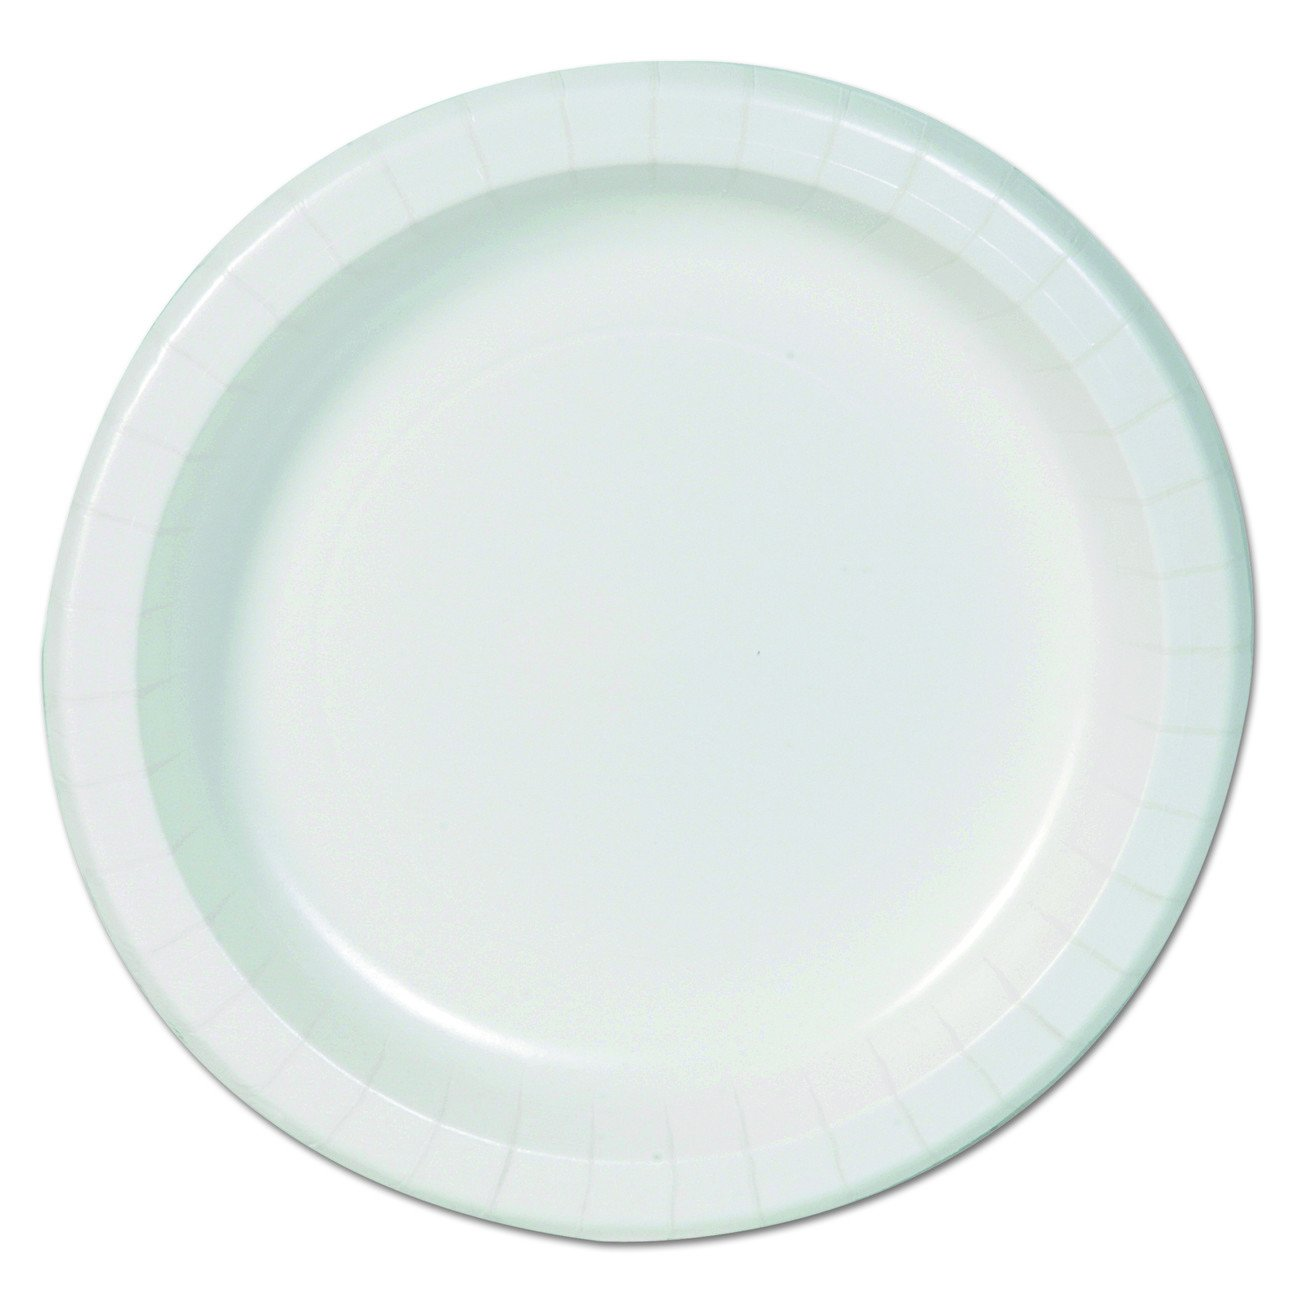 "Dixie Basic DBP09W Basic Paper Dinnerware, Plates, 8.5"" Diameter, White (Pack of 500)"